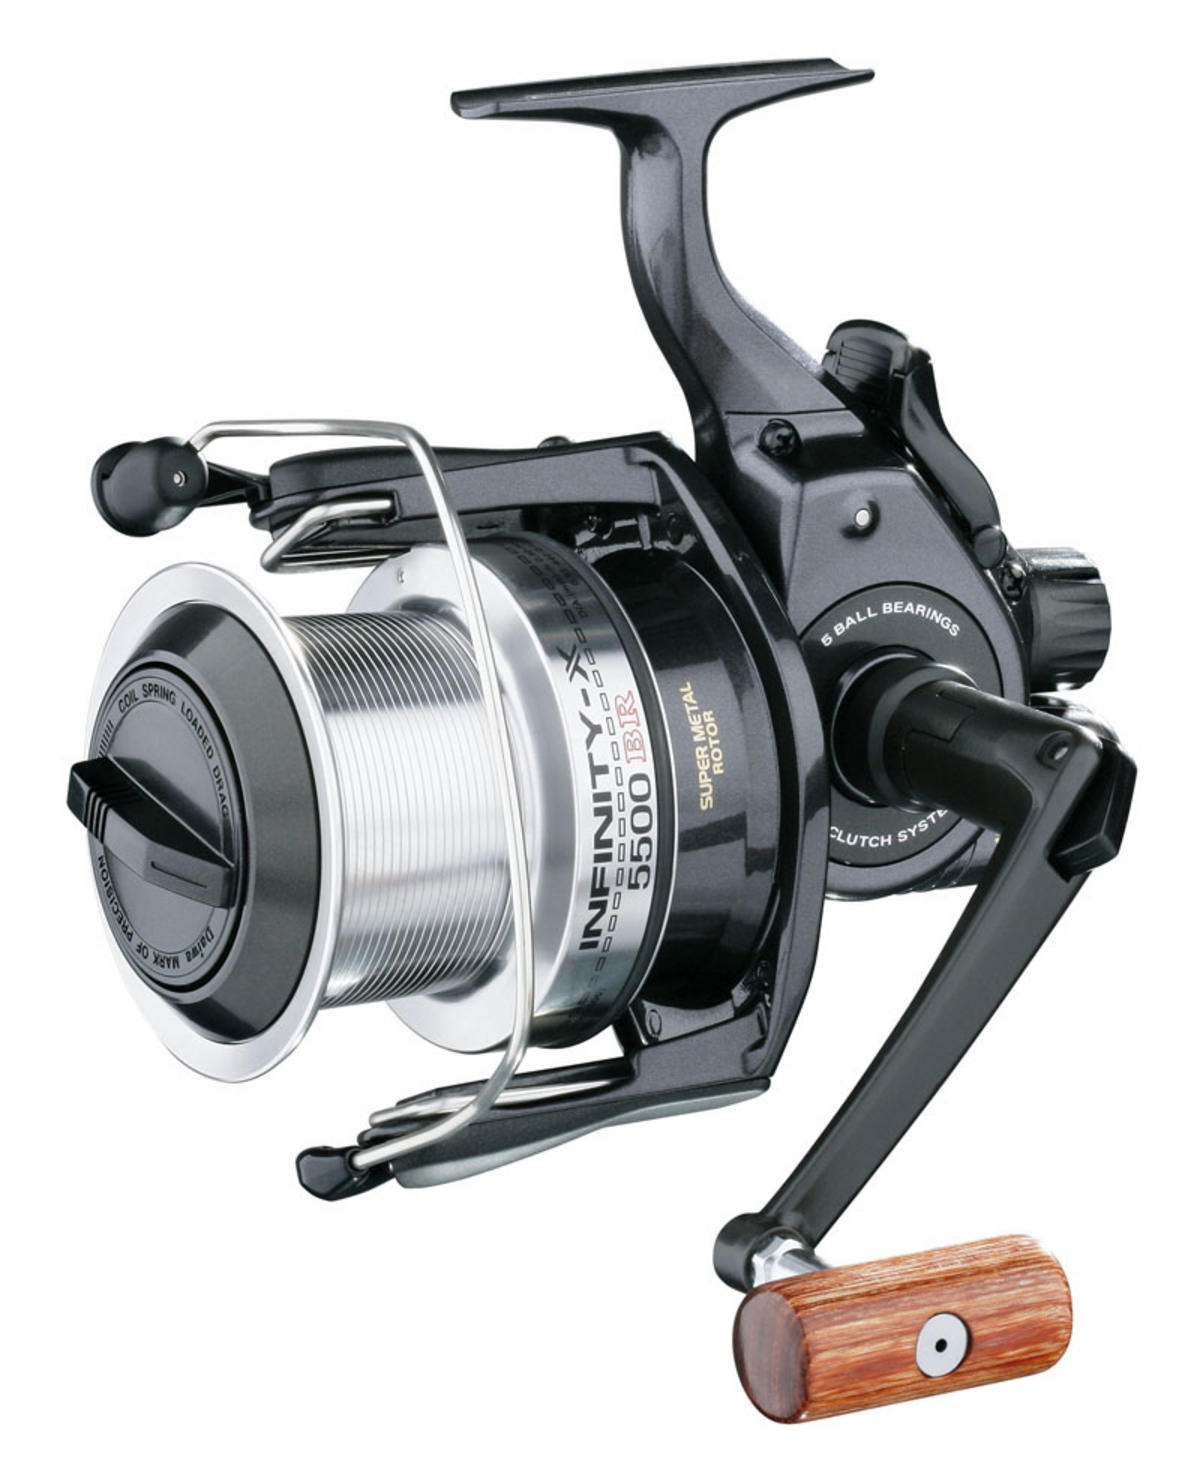 DAIWA INFINITY X 5500 BITE 'N' RUN Model No IFX5500BR SPECIMEN FISHING REEL